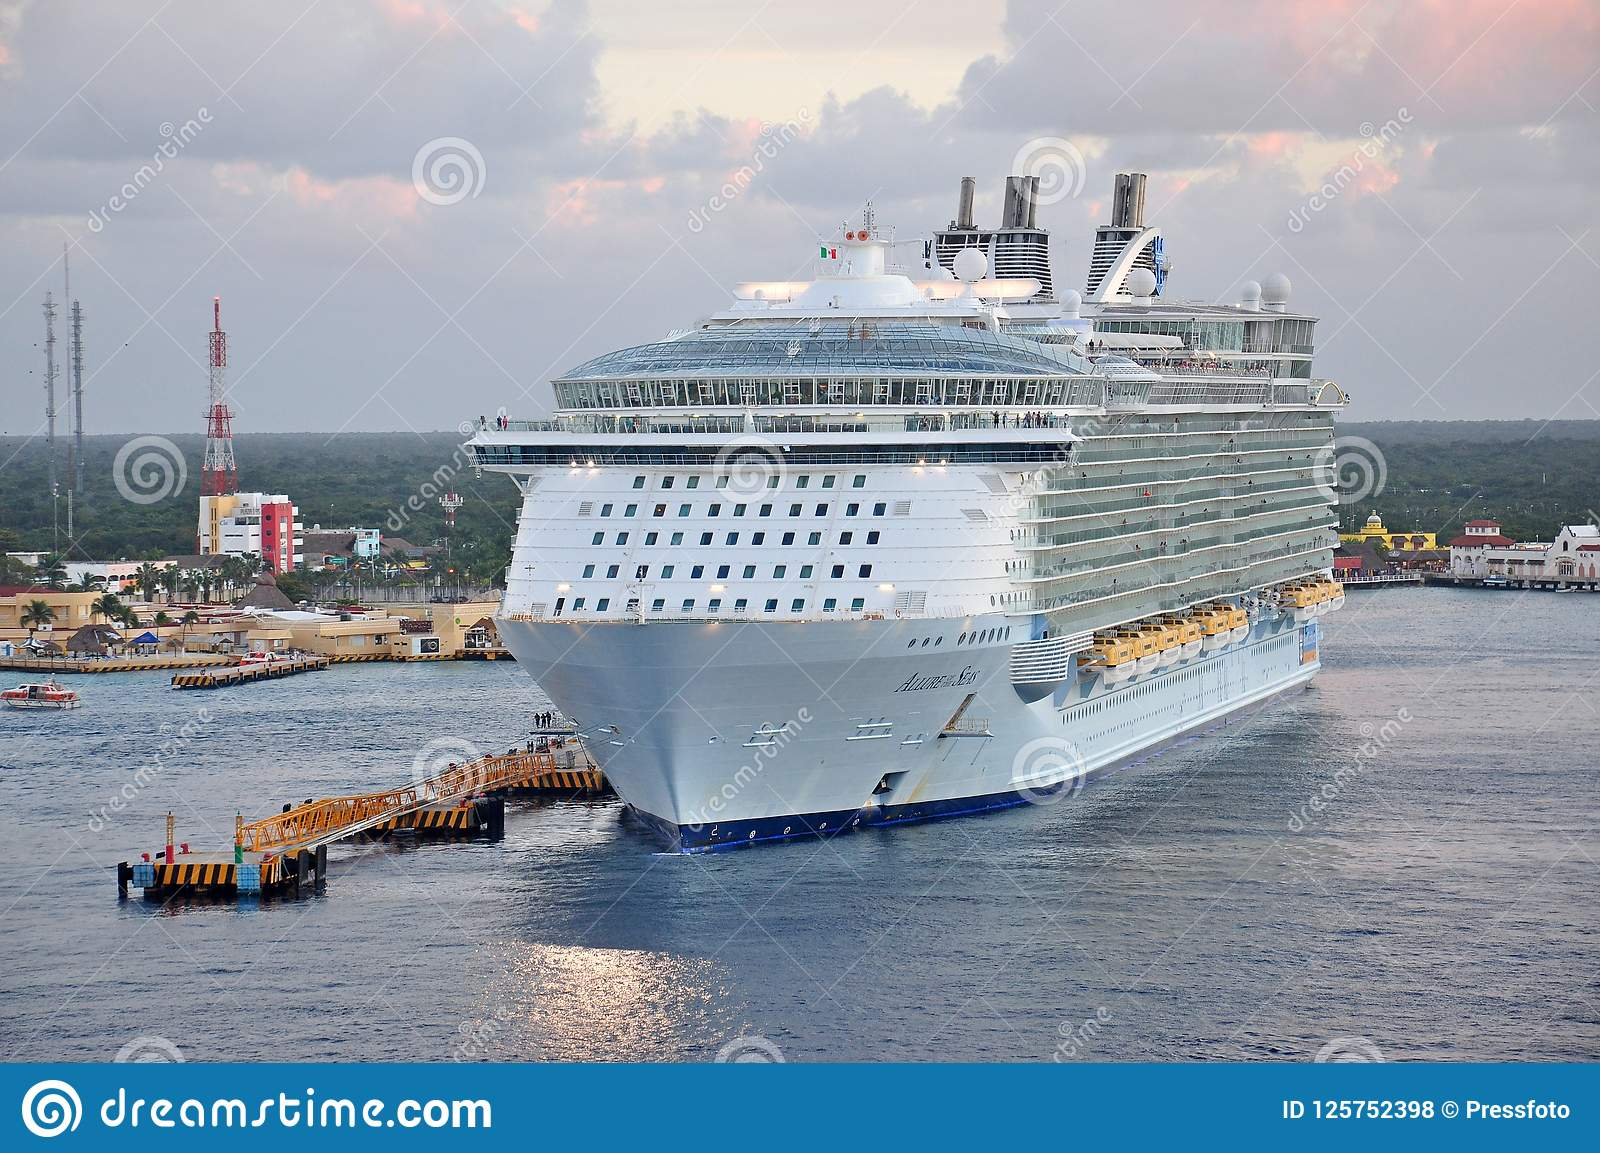 MS Allure of the Seas in Cozumel, Mexico